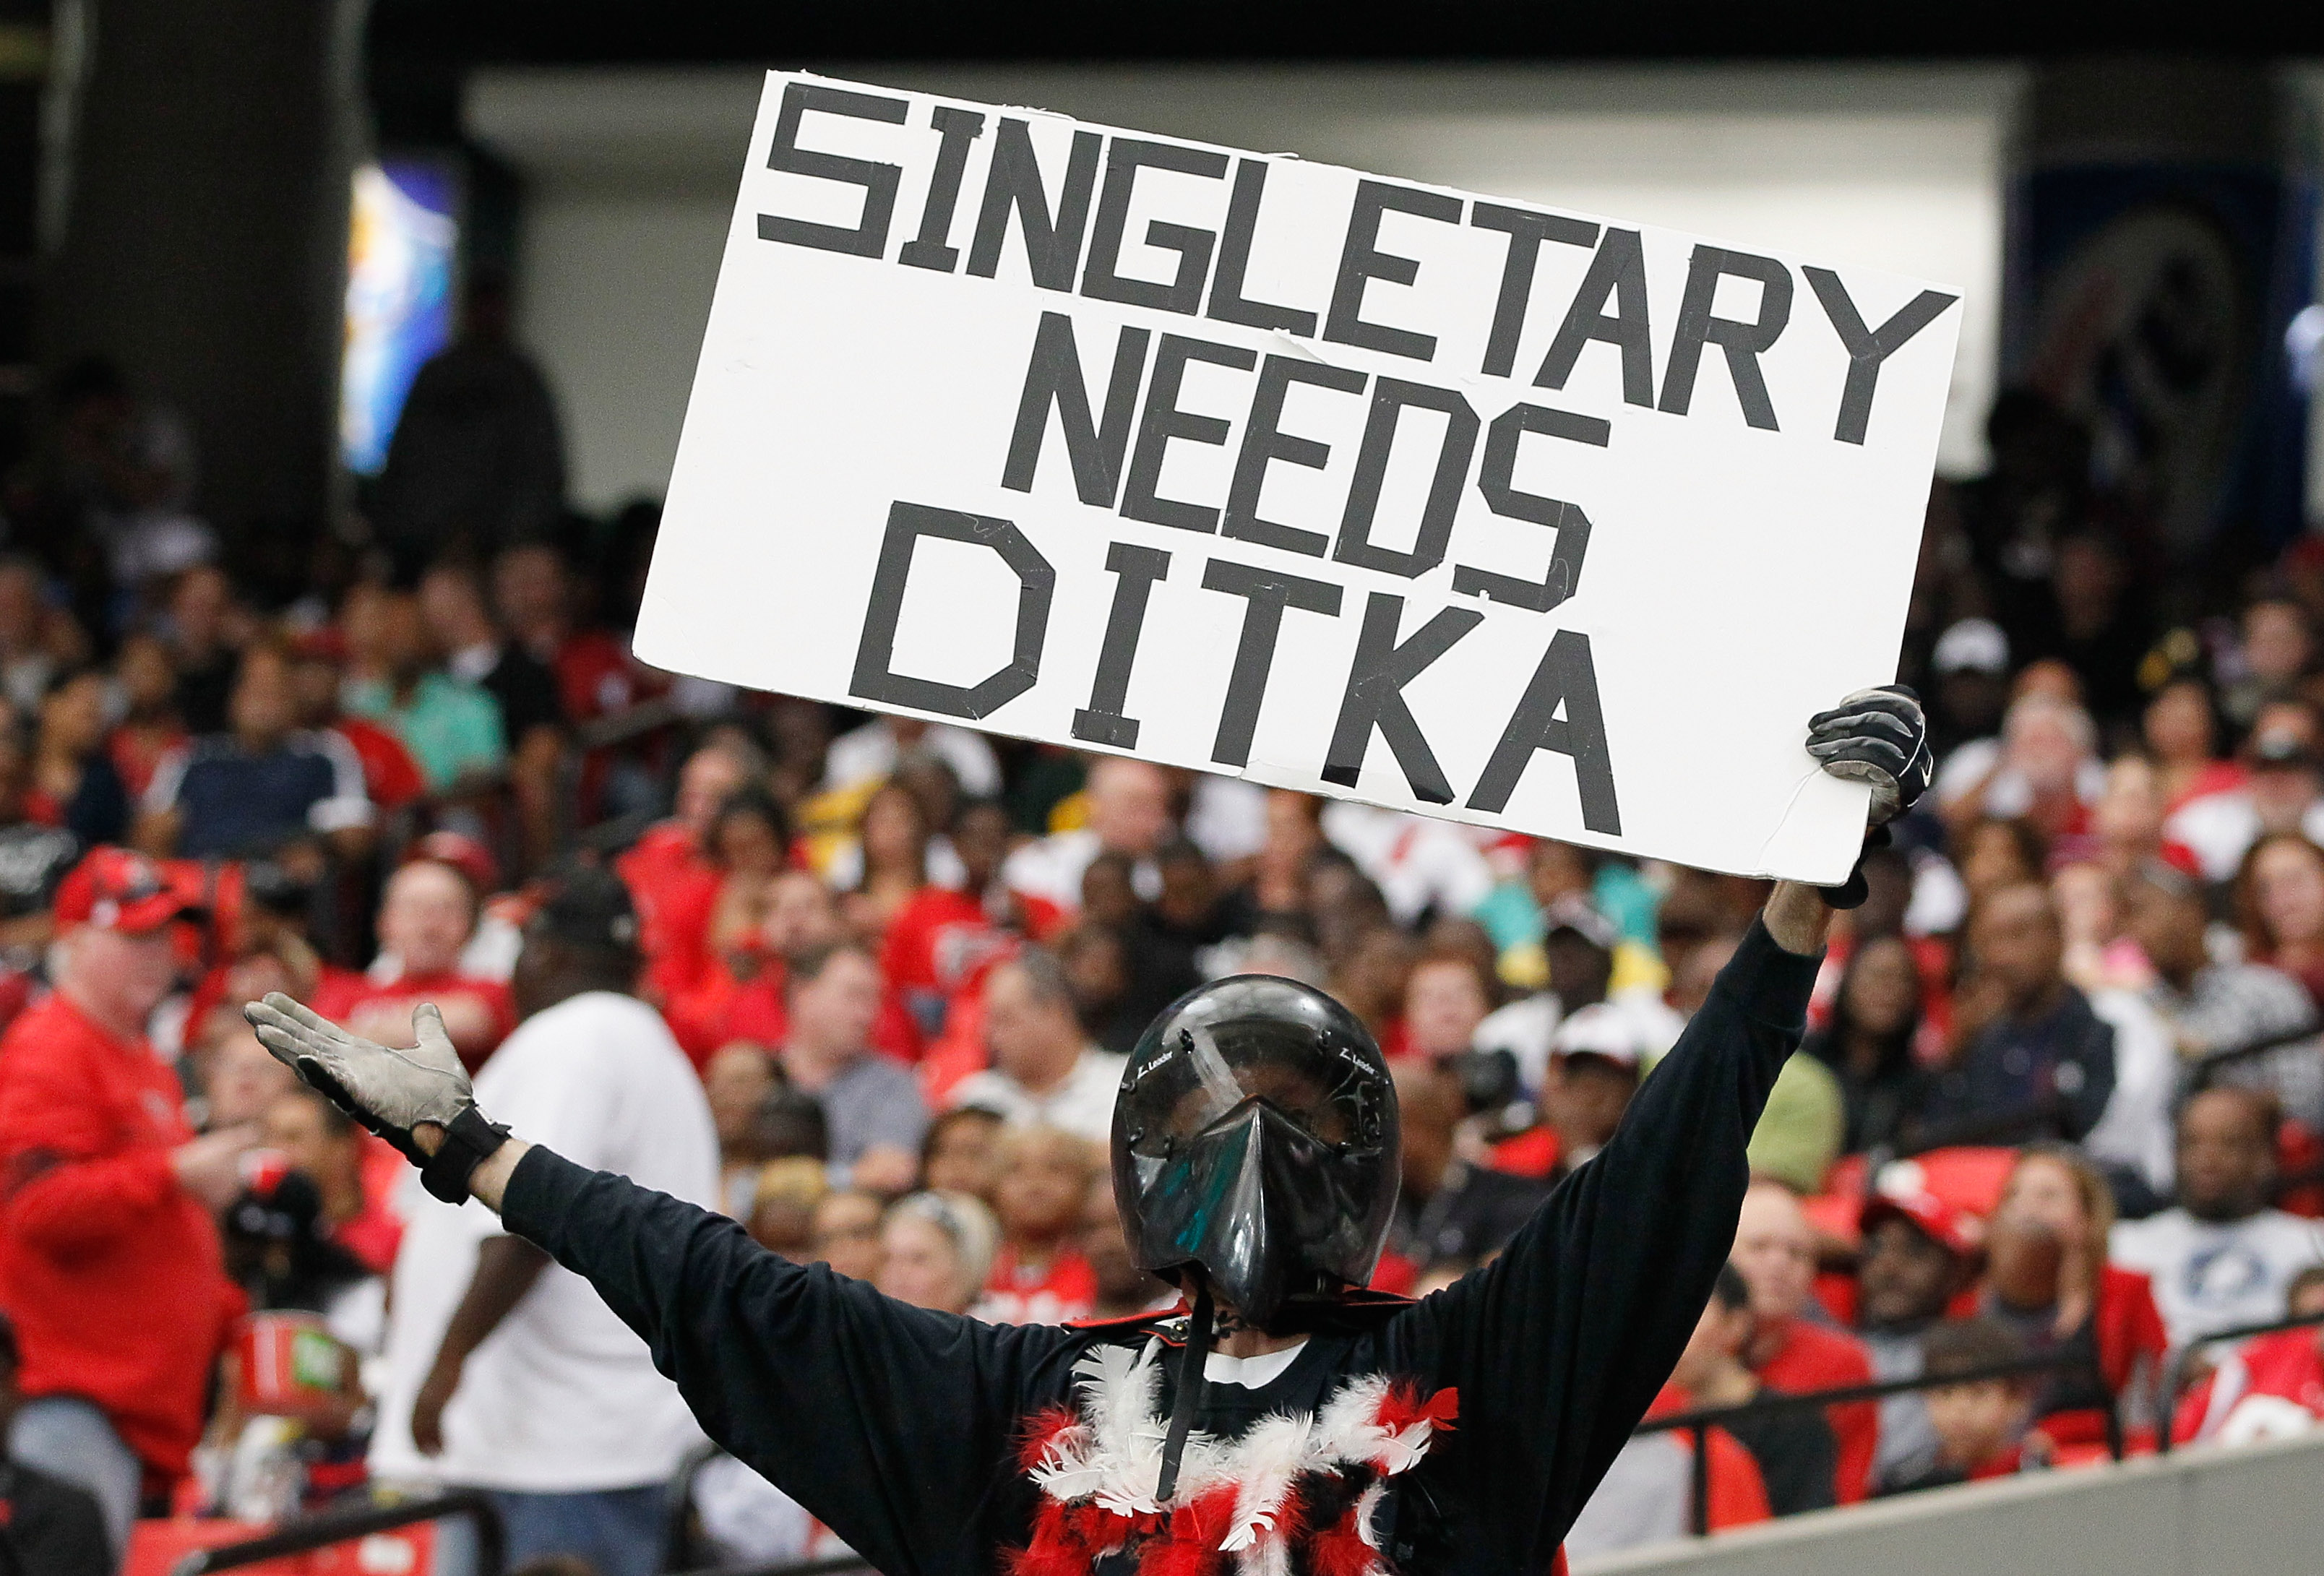 ATLANTA - OCTOBER 03:  A fan of the Atlanta Falcons holds up a sign about Hall of Famer Mike Ditka and head coach Mike Singletary of the San Francisco 49ers at Georgia Dome on October 3, 2010 in Atlanta, Georgia.  (Photo by Kevin C. Cox/Getty Images)